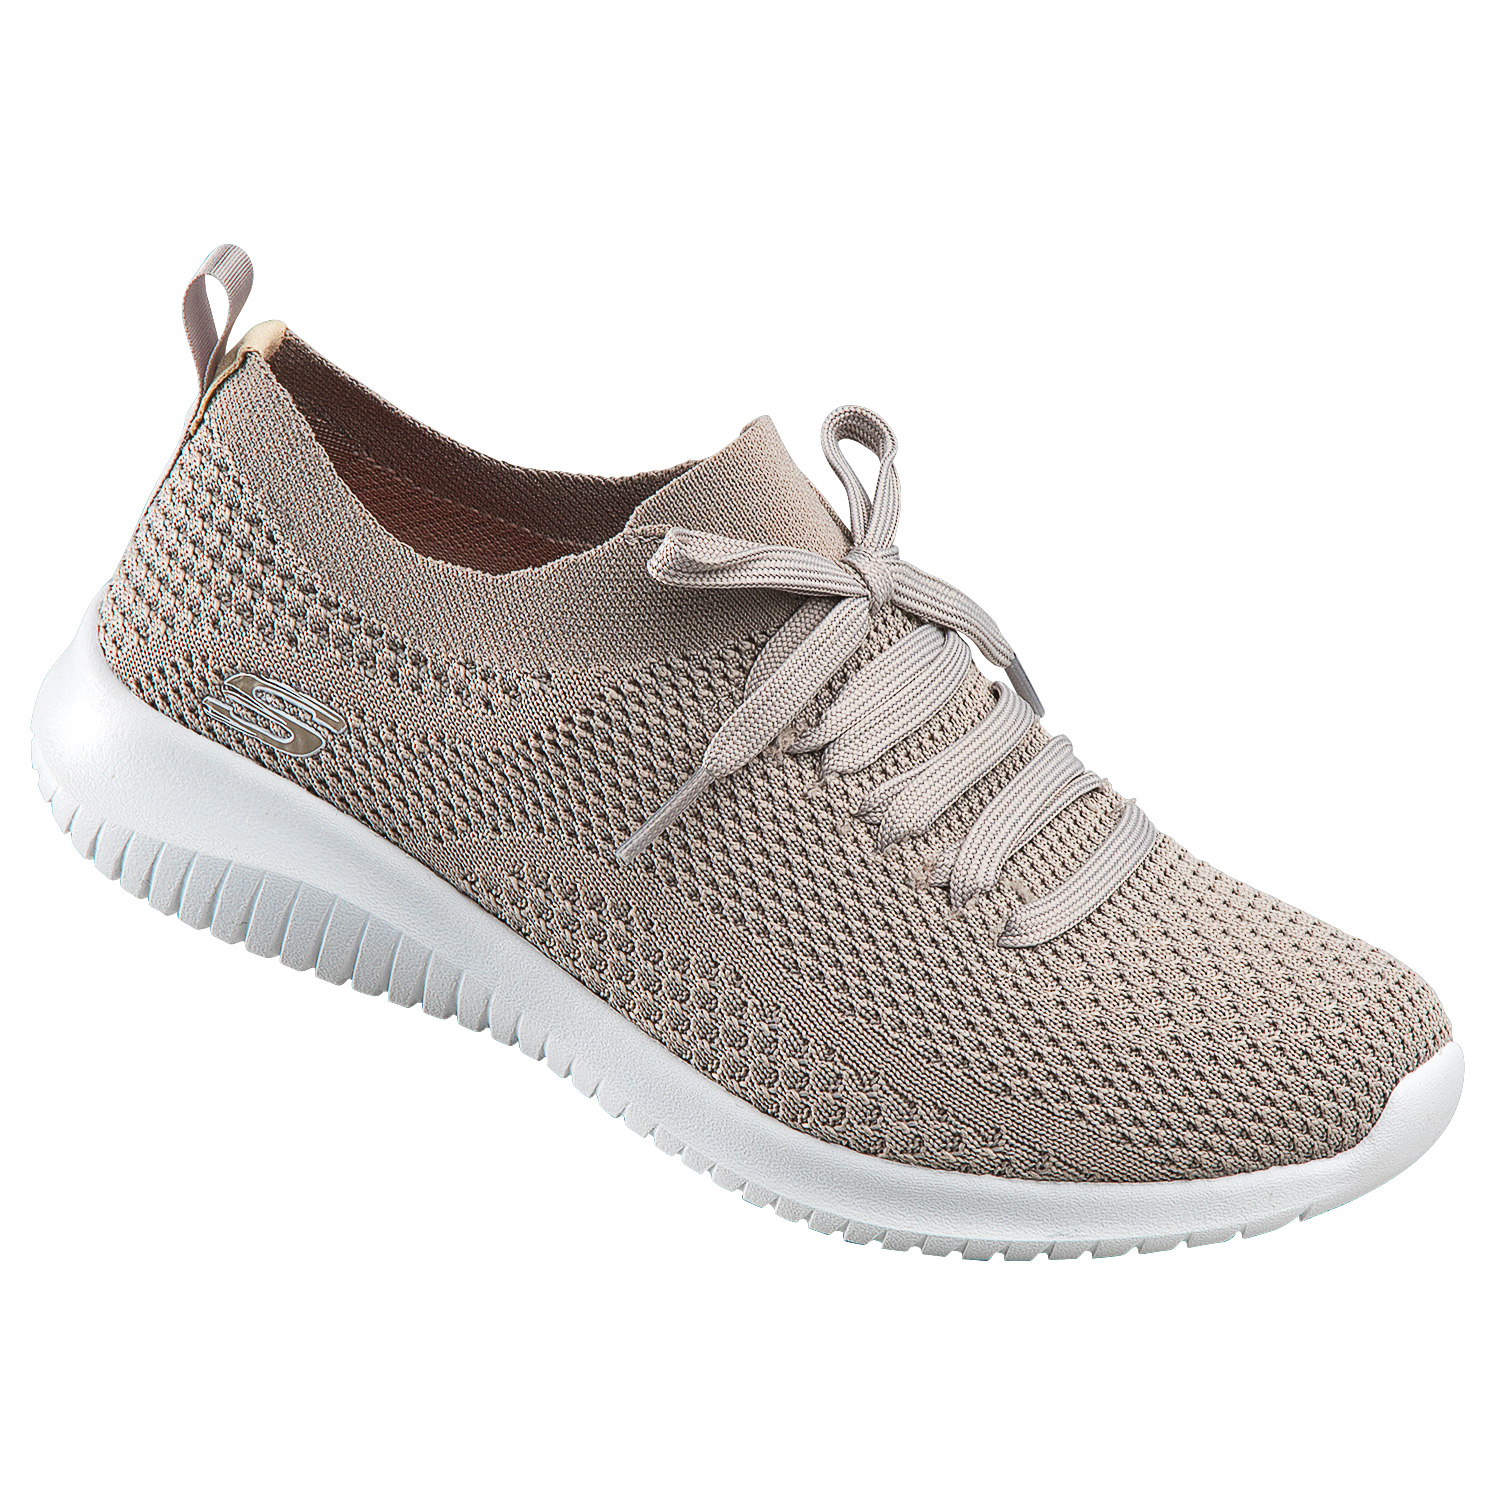 Trending Category - Women's Lifestyle Shoes